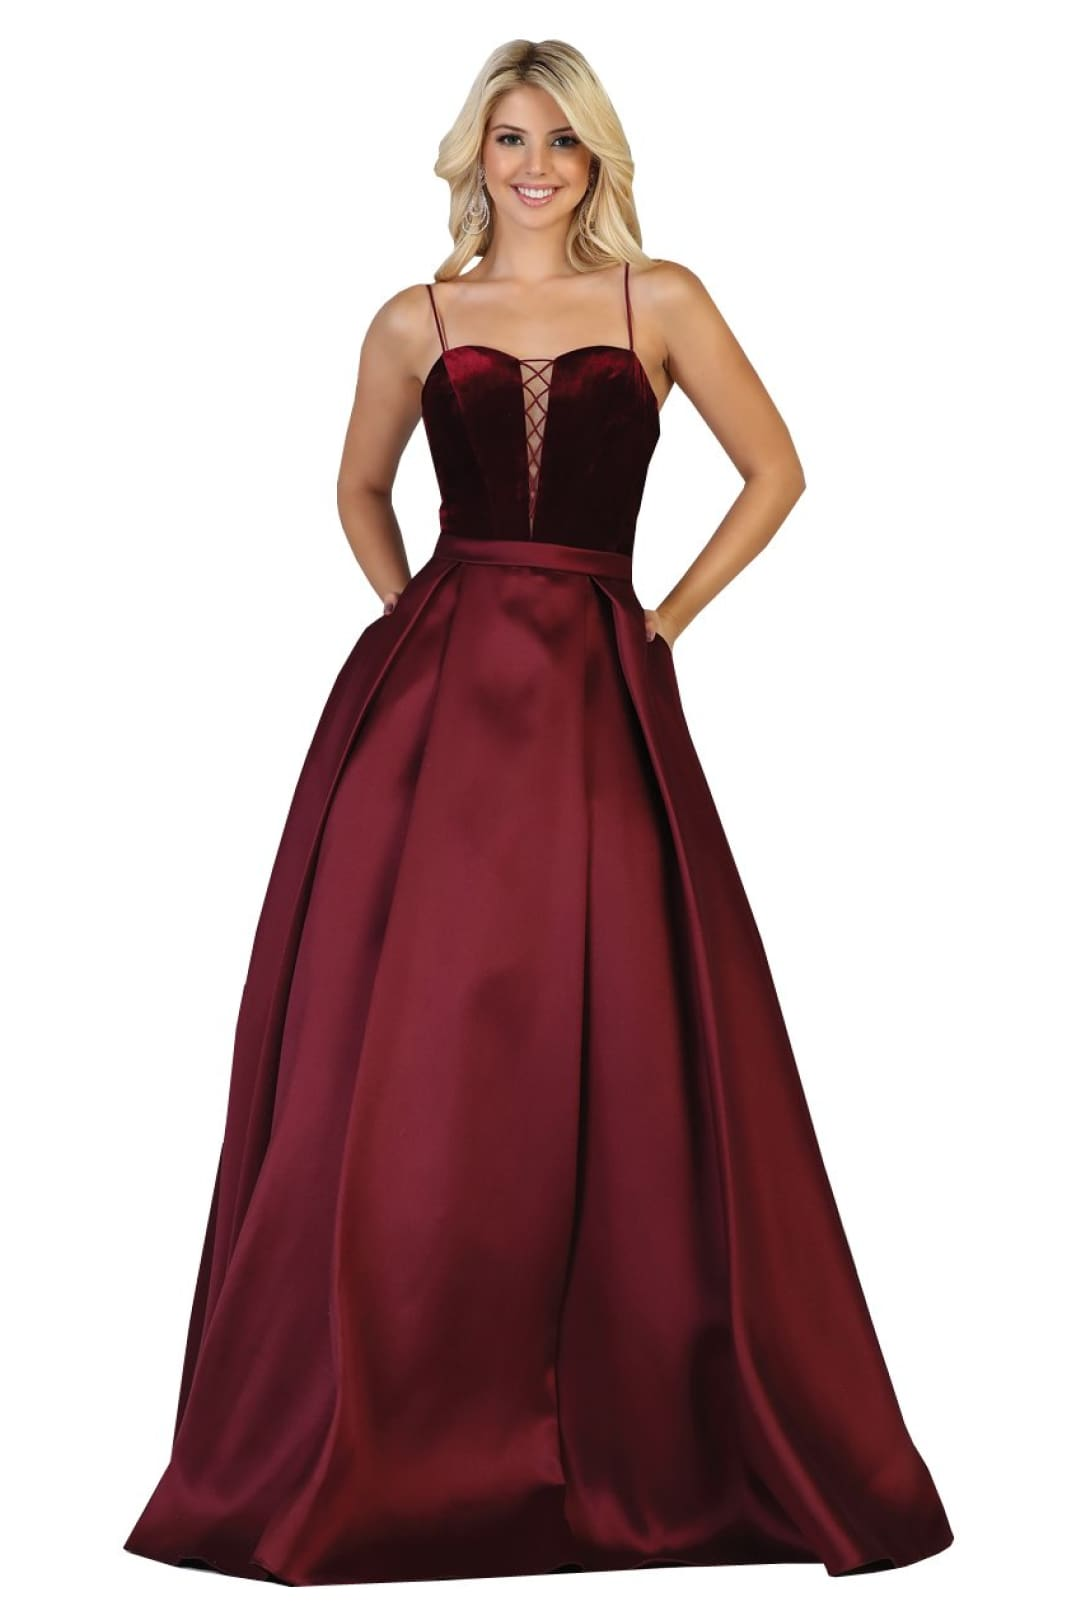 Pleated Satin Prom Dress - Burgundy / 4